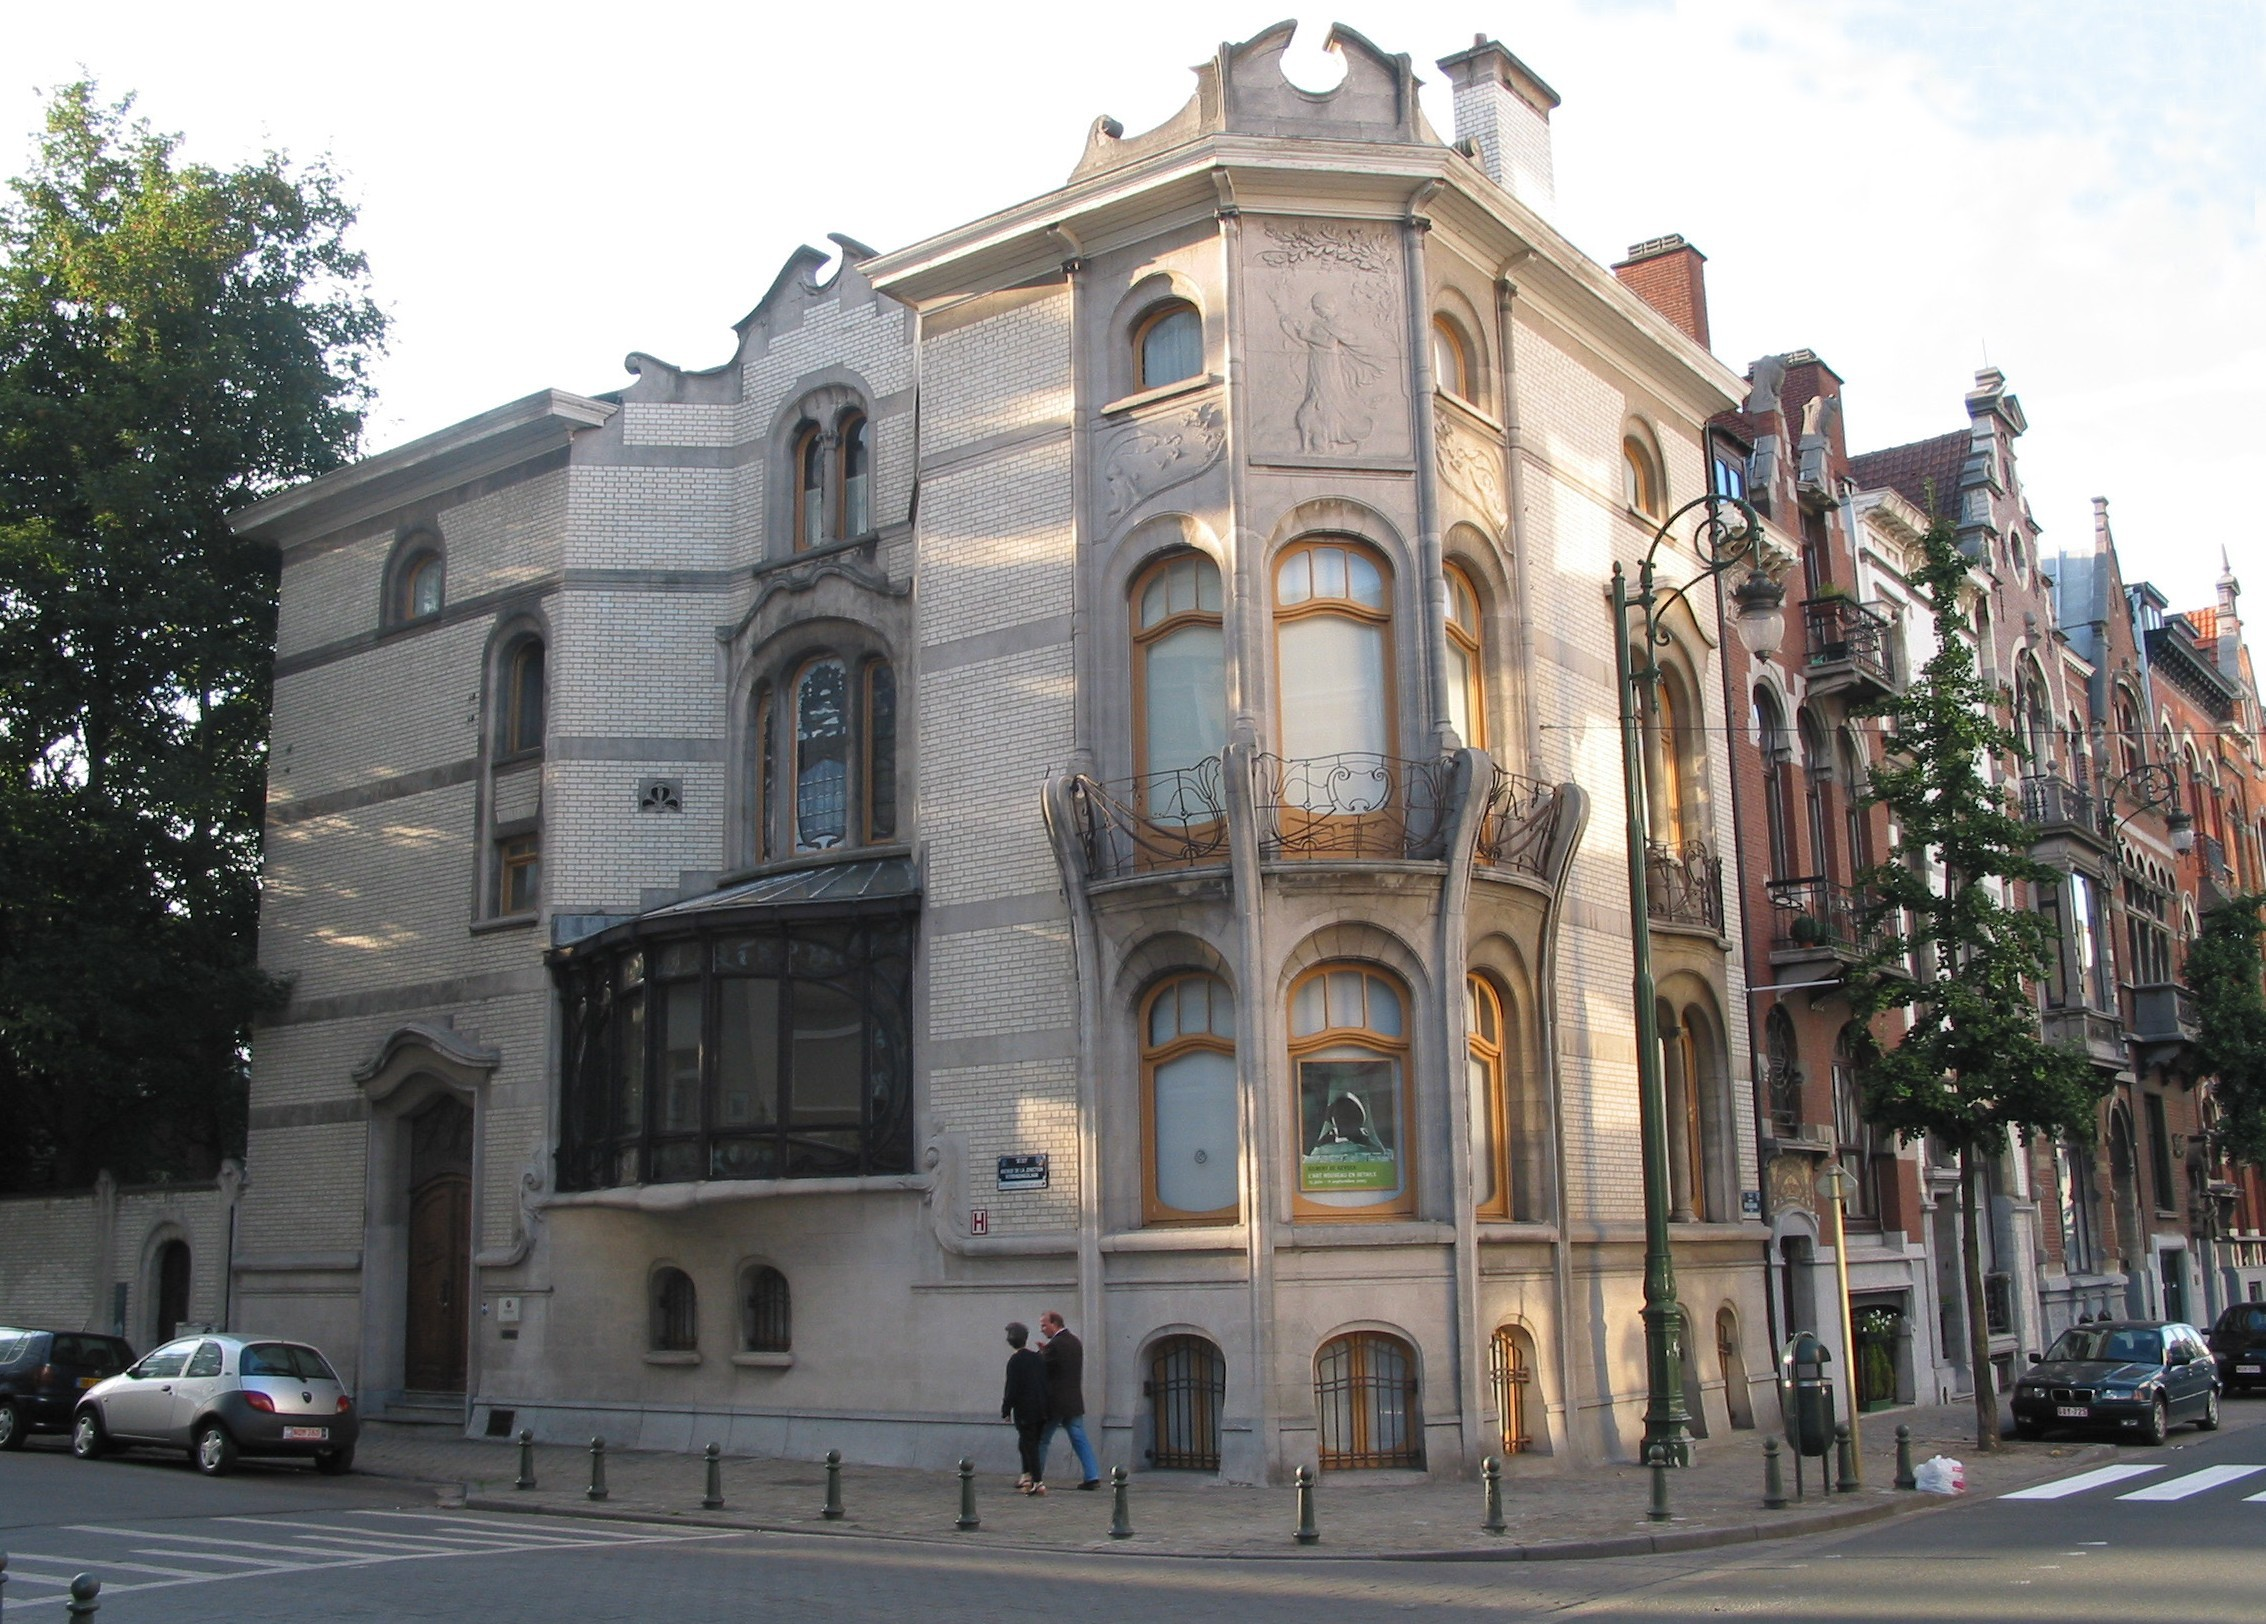 A Brief History of Art Nouveau in Belgium